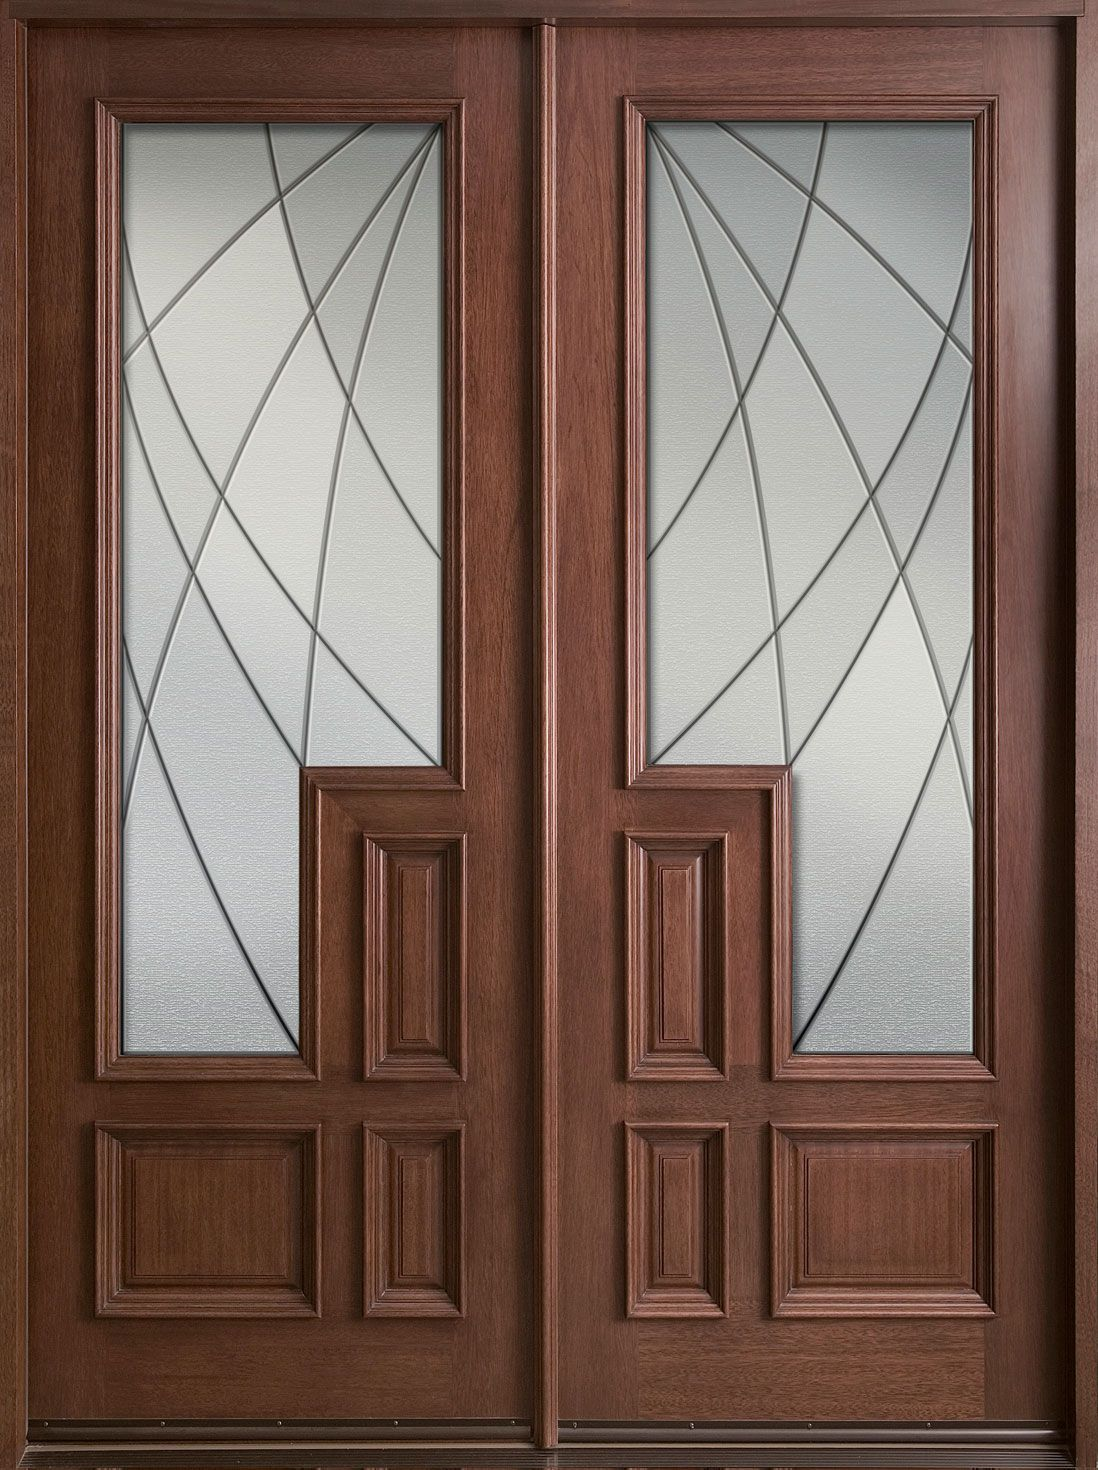 Inspiring Double Fiberglass Entry Door As Furniture For Home Exterior And Front Porch Decoration